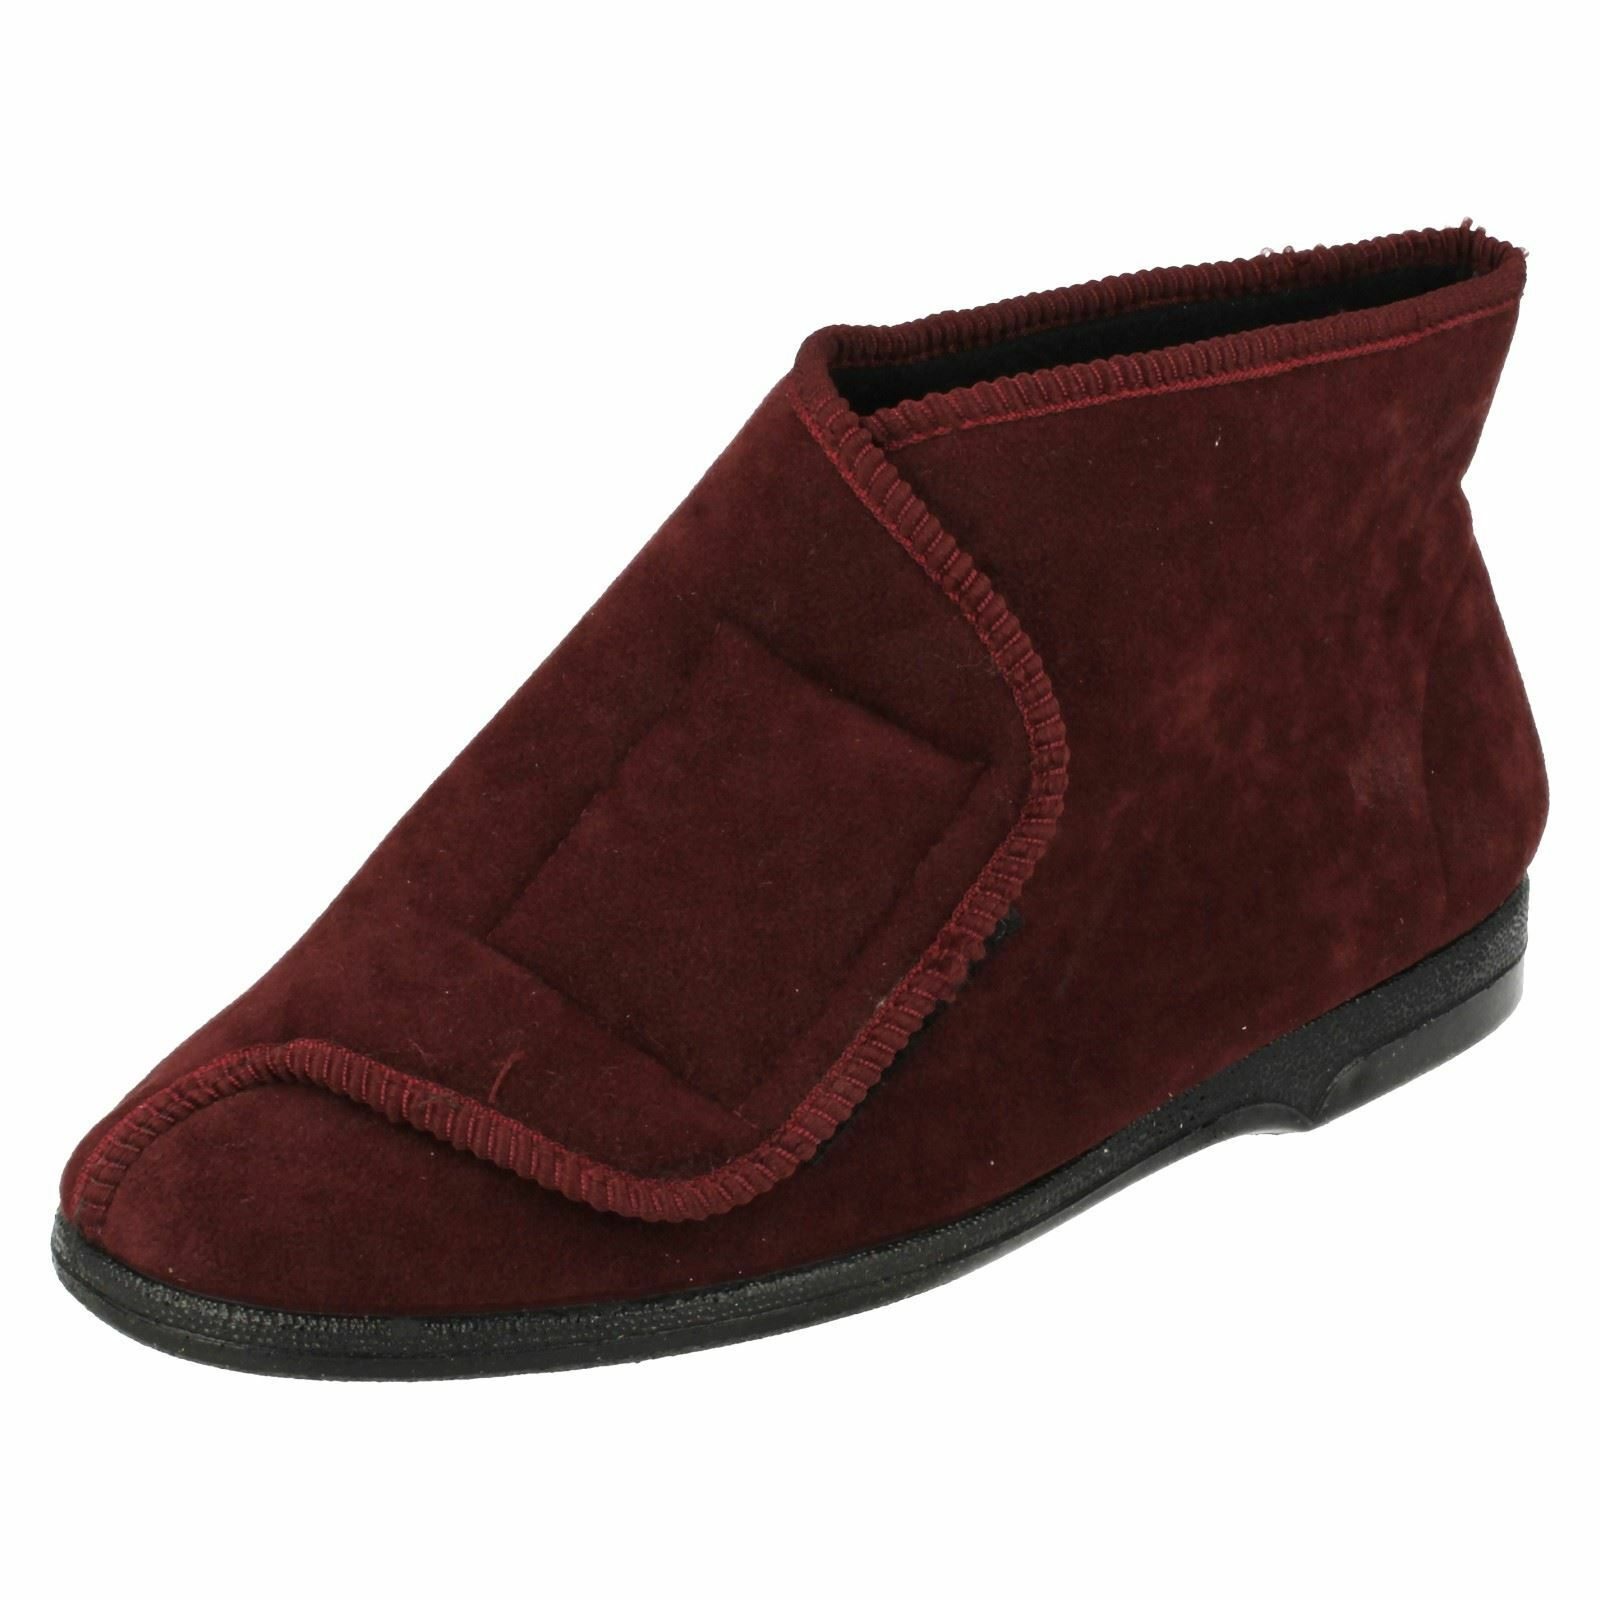 SALE Balmoral 'VB-M48' Slippers. Mens Wine Colour Boot Slippers. 'VB-M48' Wide Opening f4fa13